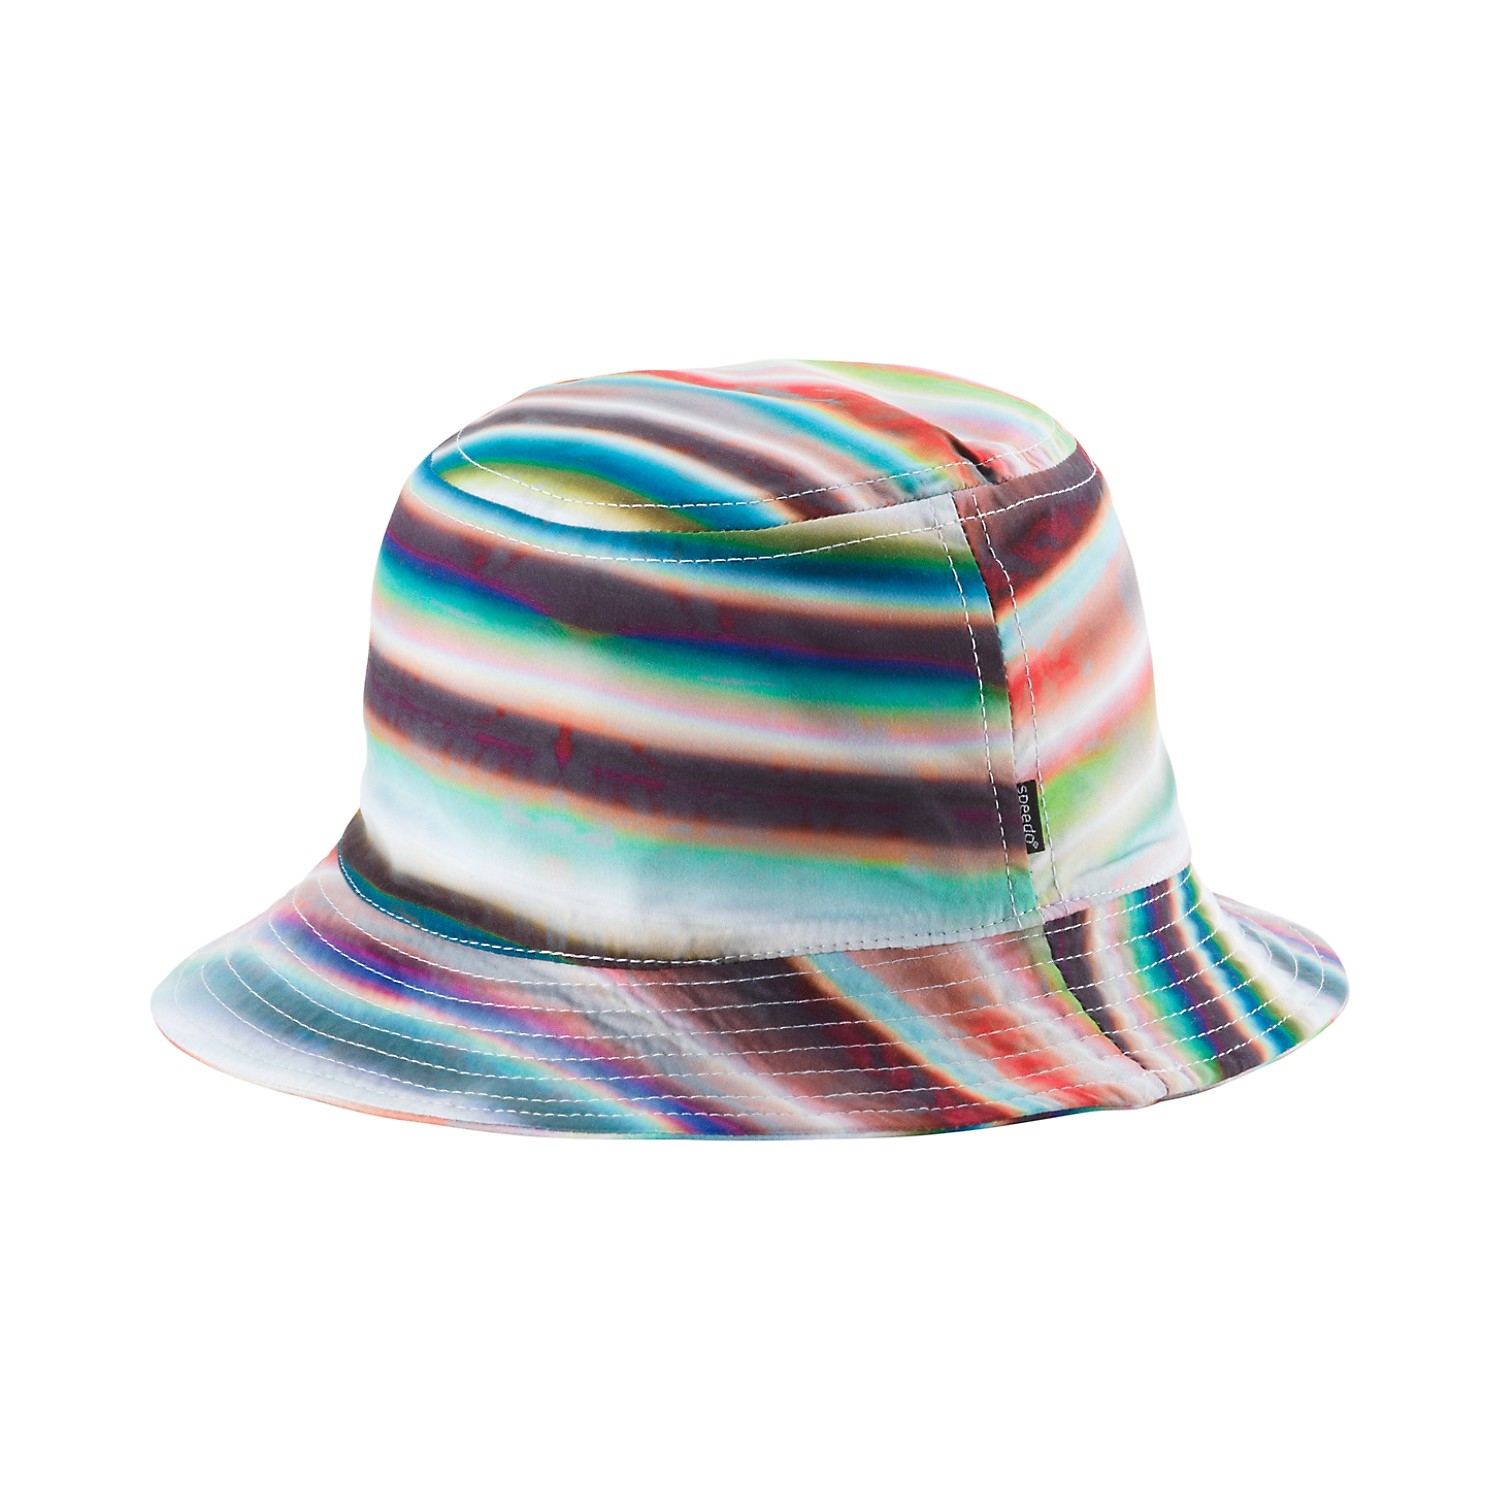 SPEEDO Moving Tides Bucket Hat b52966a18484